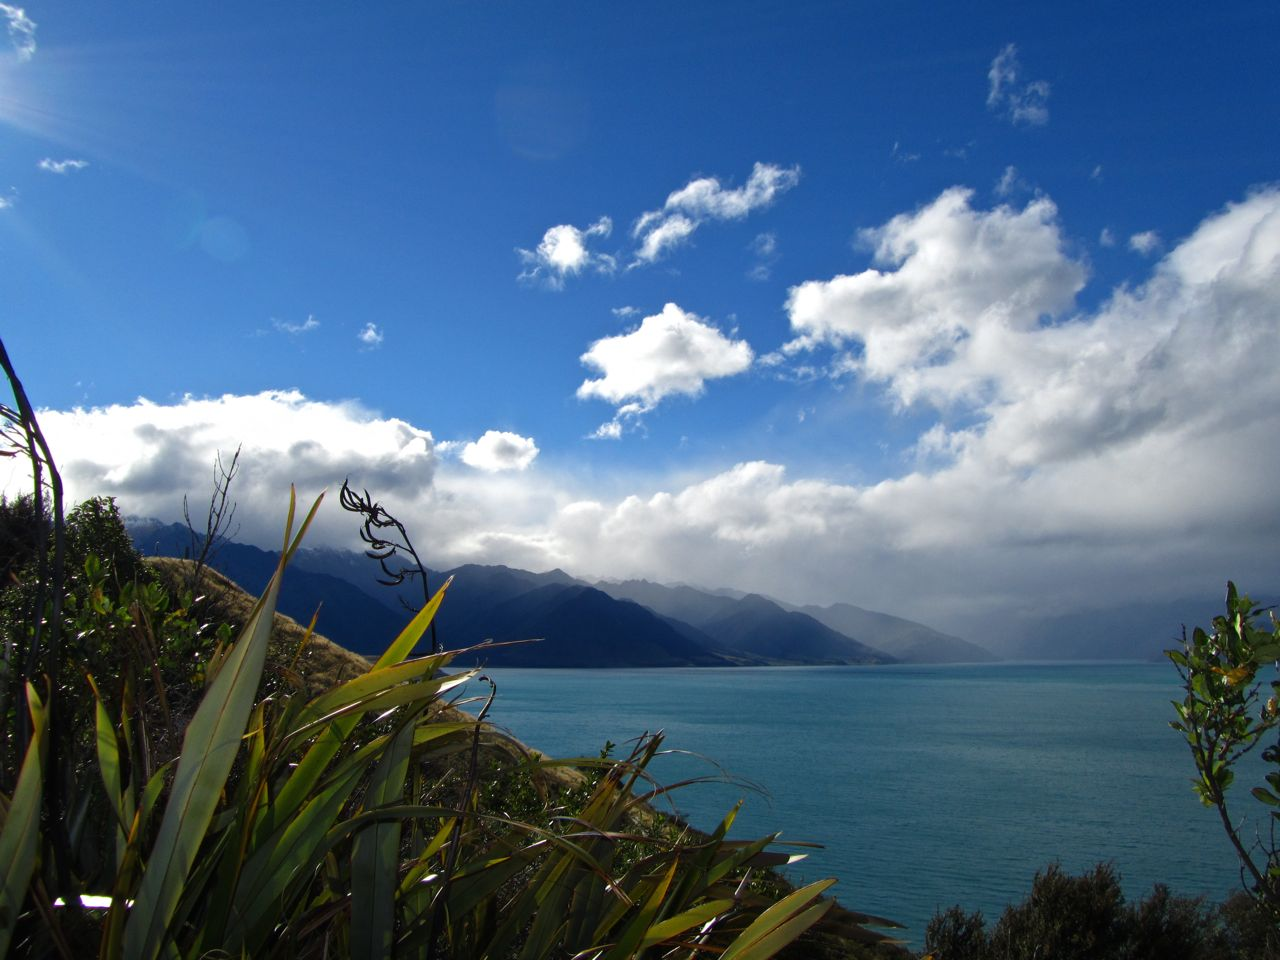 Lake Hawea New Zealand - South Island